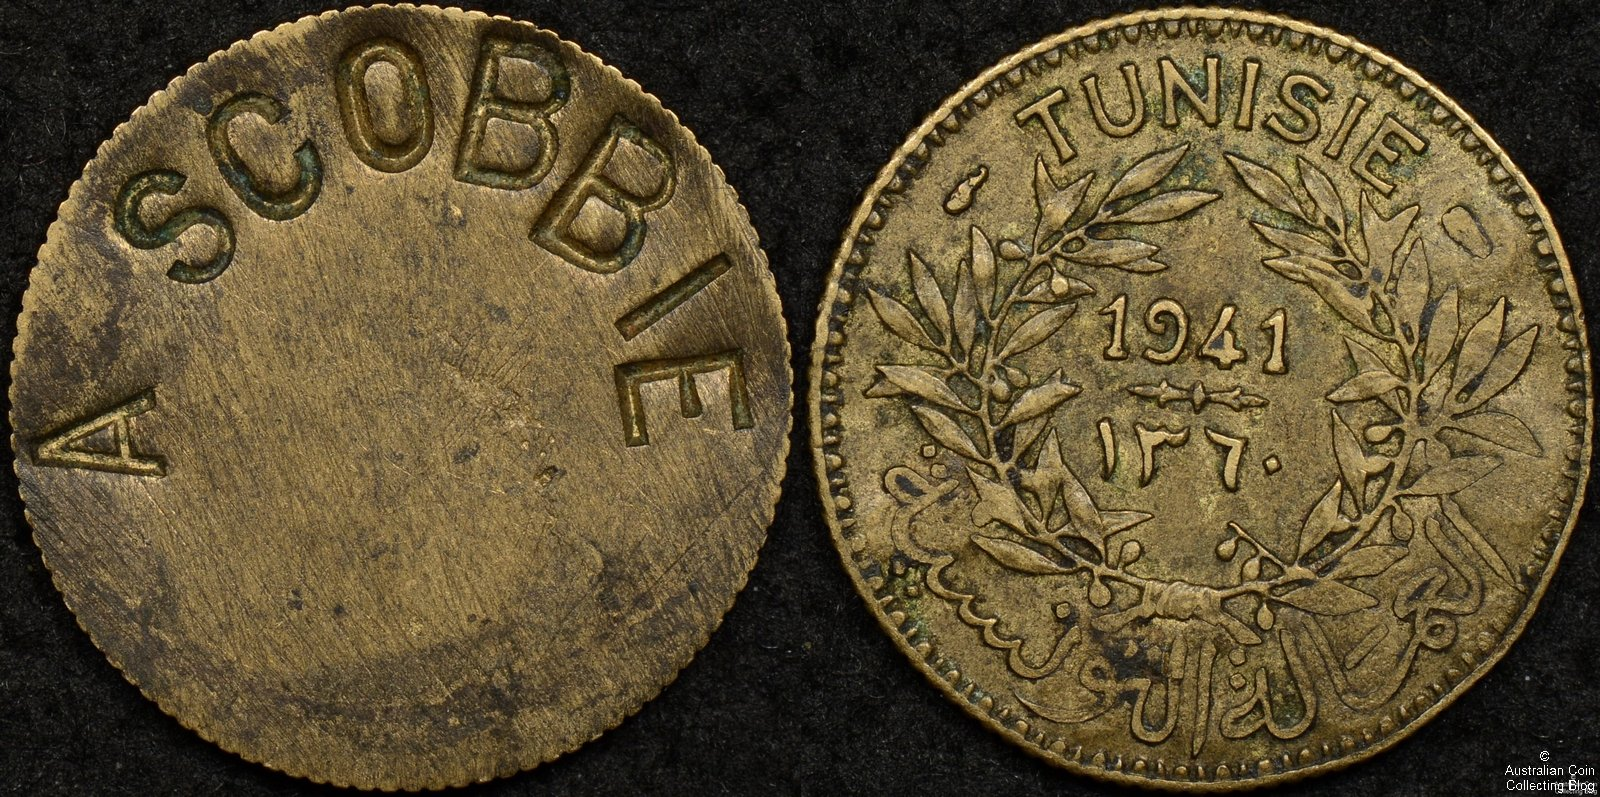 1941 Unofficial ID Tag on 1941 Tunisia 50 Centimes